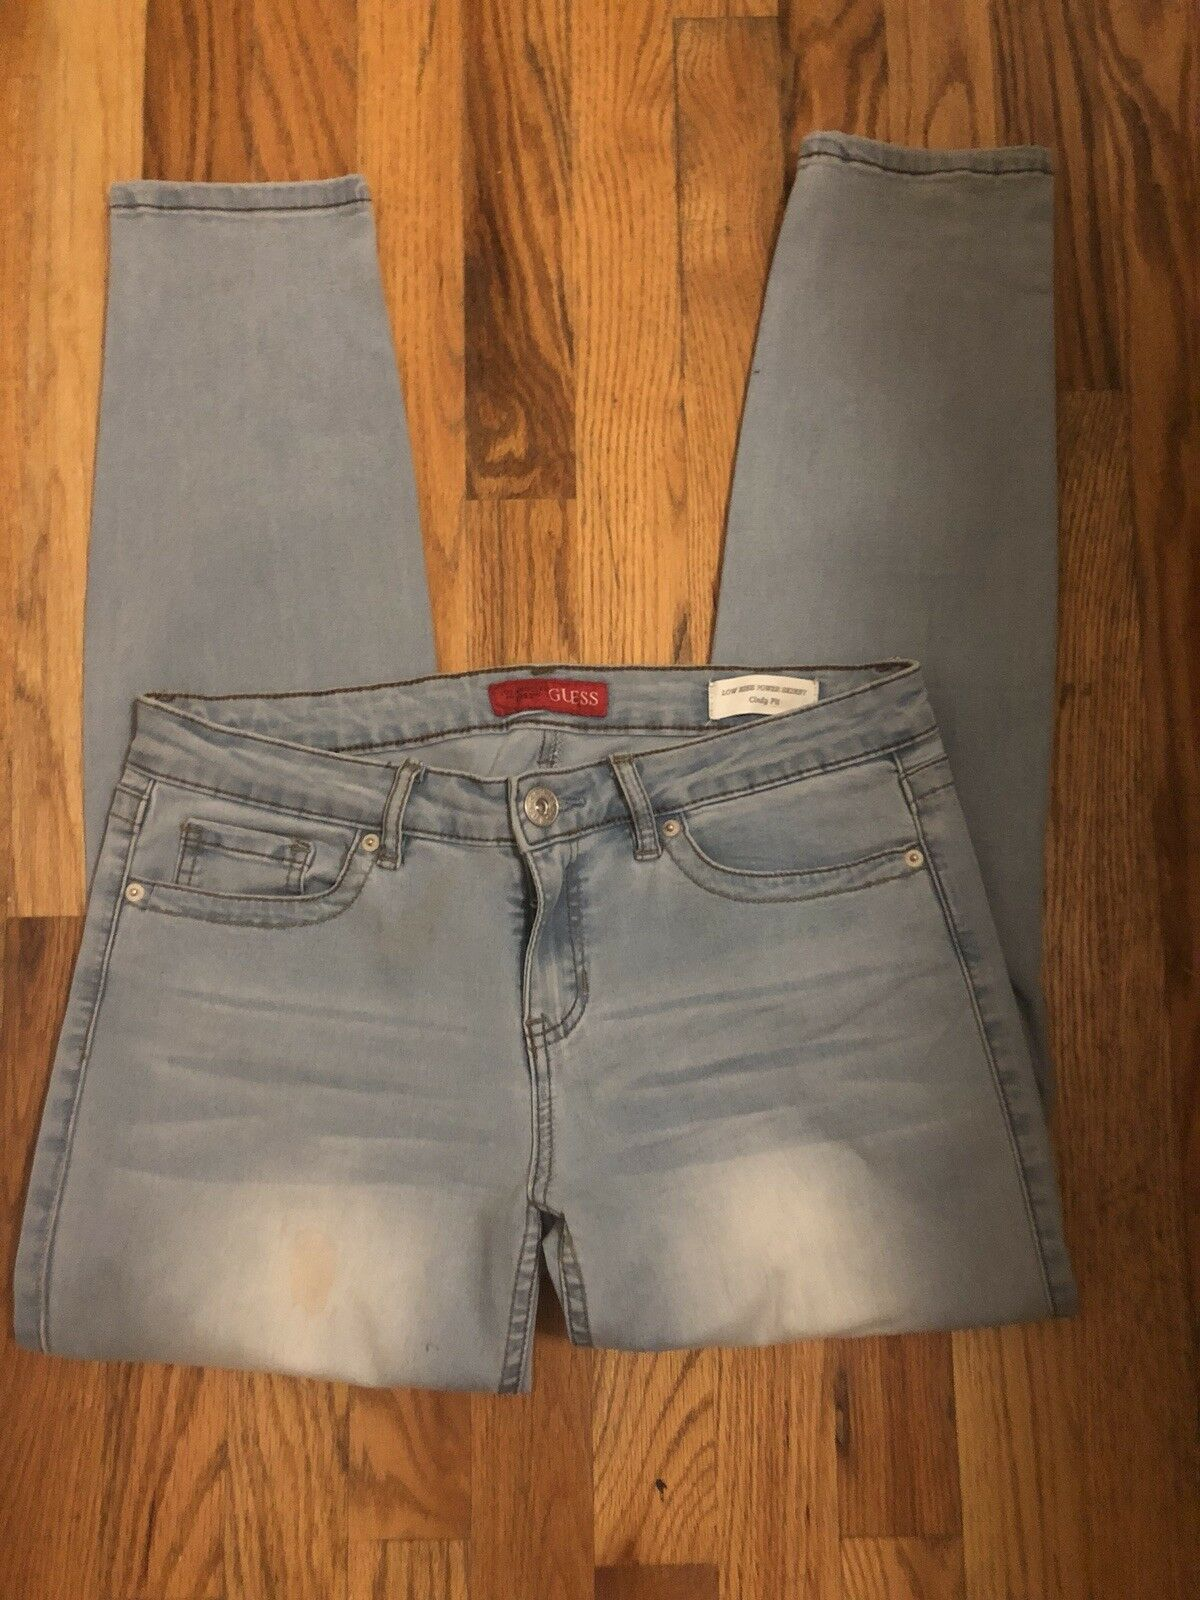 Guess Women Low Rise Power Skinny Cindy Fit Jeans Size 30